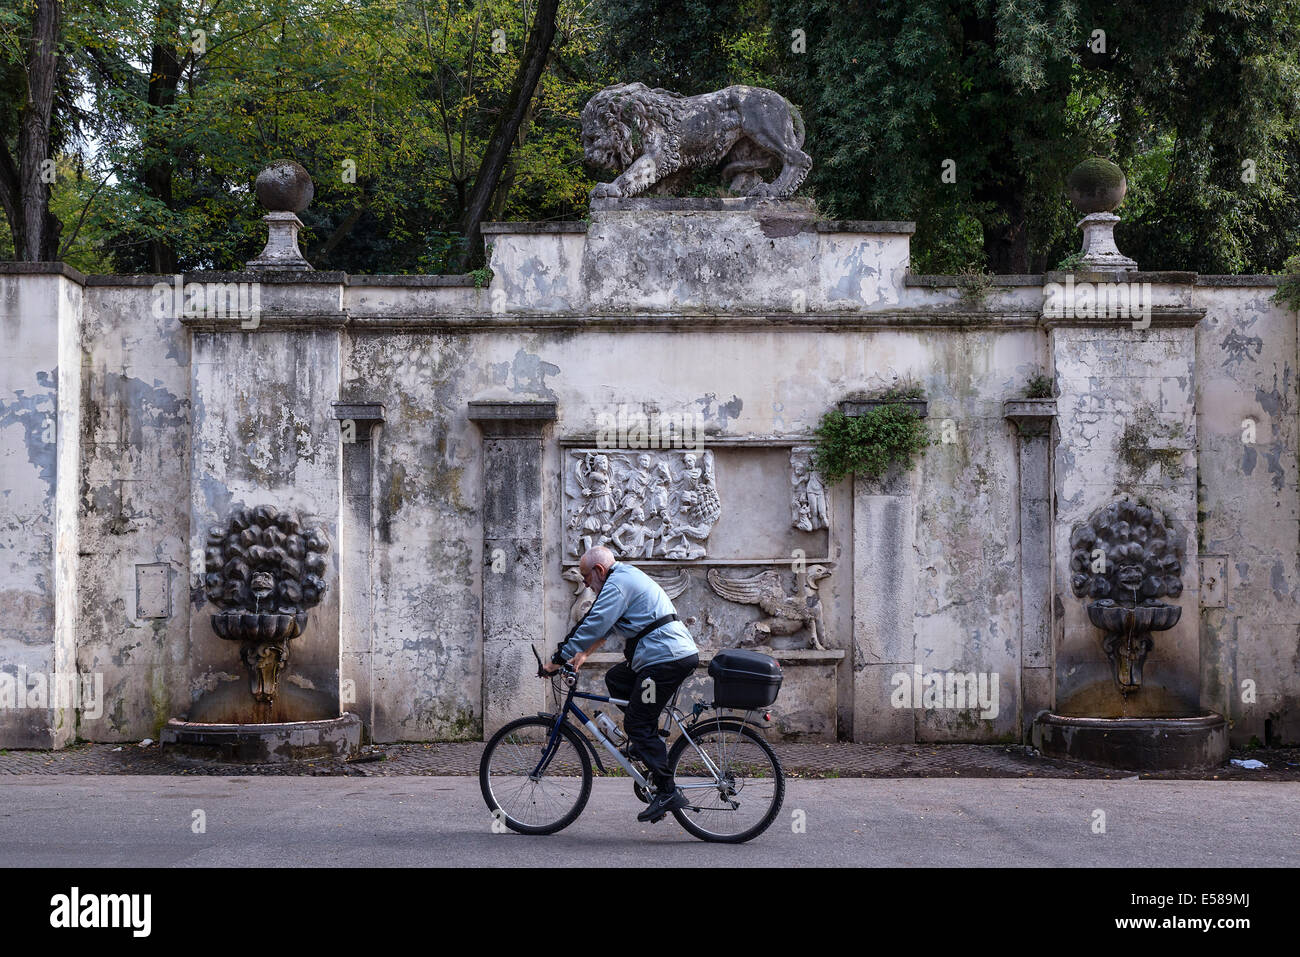 Man rides his bike past a rustic water fountain in the Villa Borghese, Rome, Italy - Stock Image